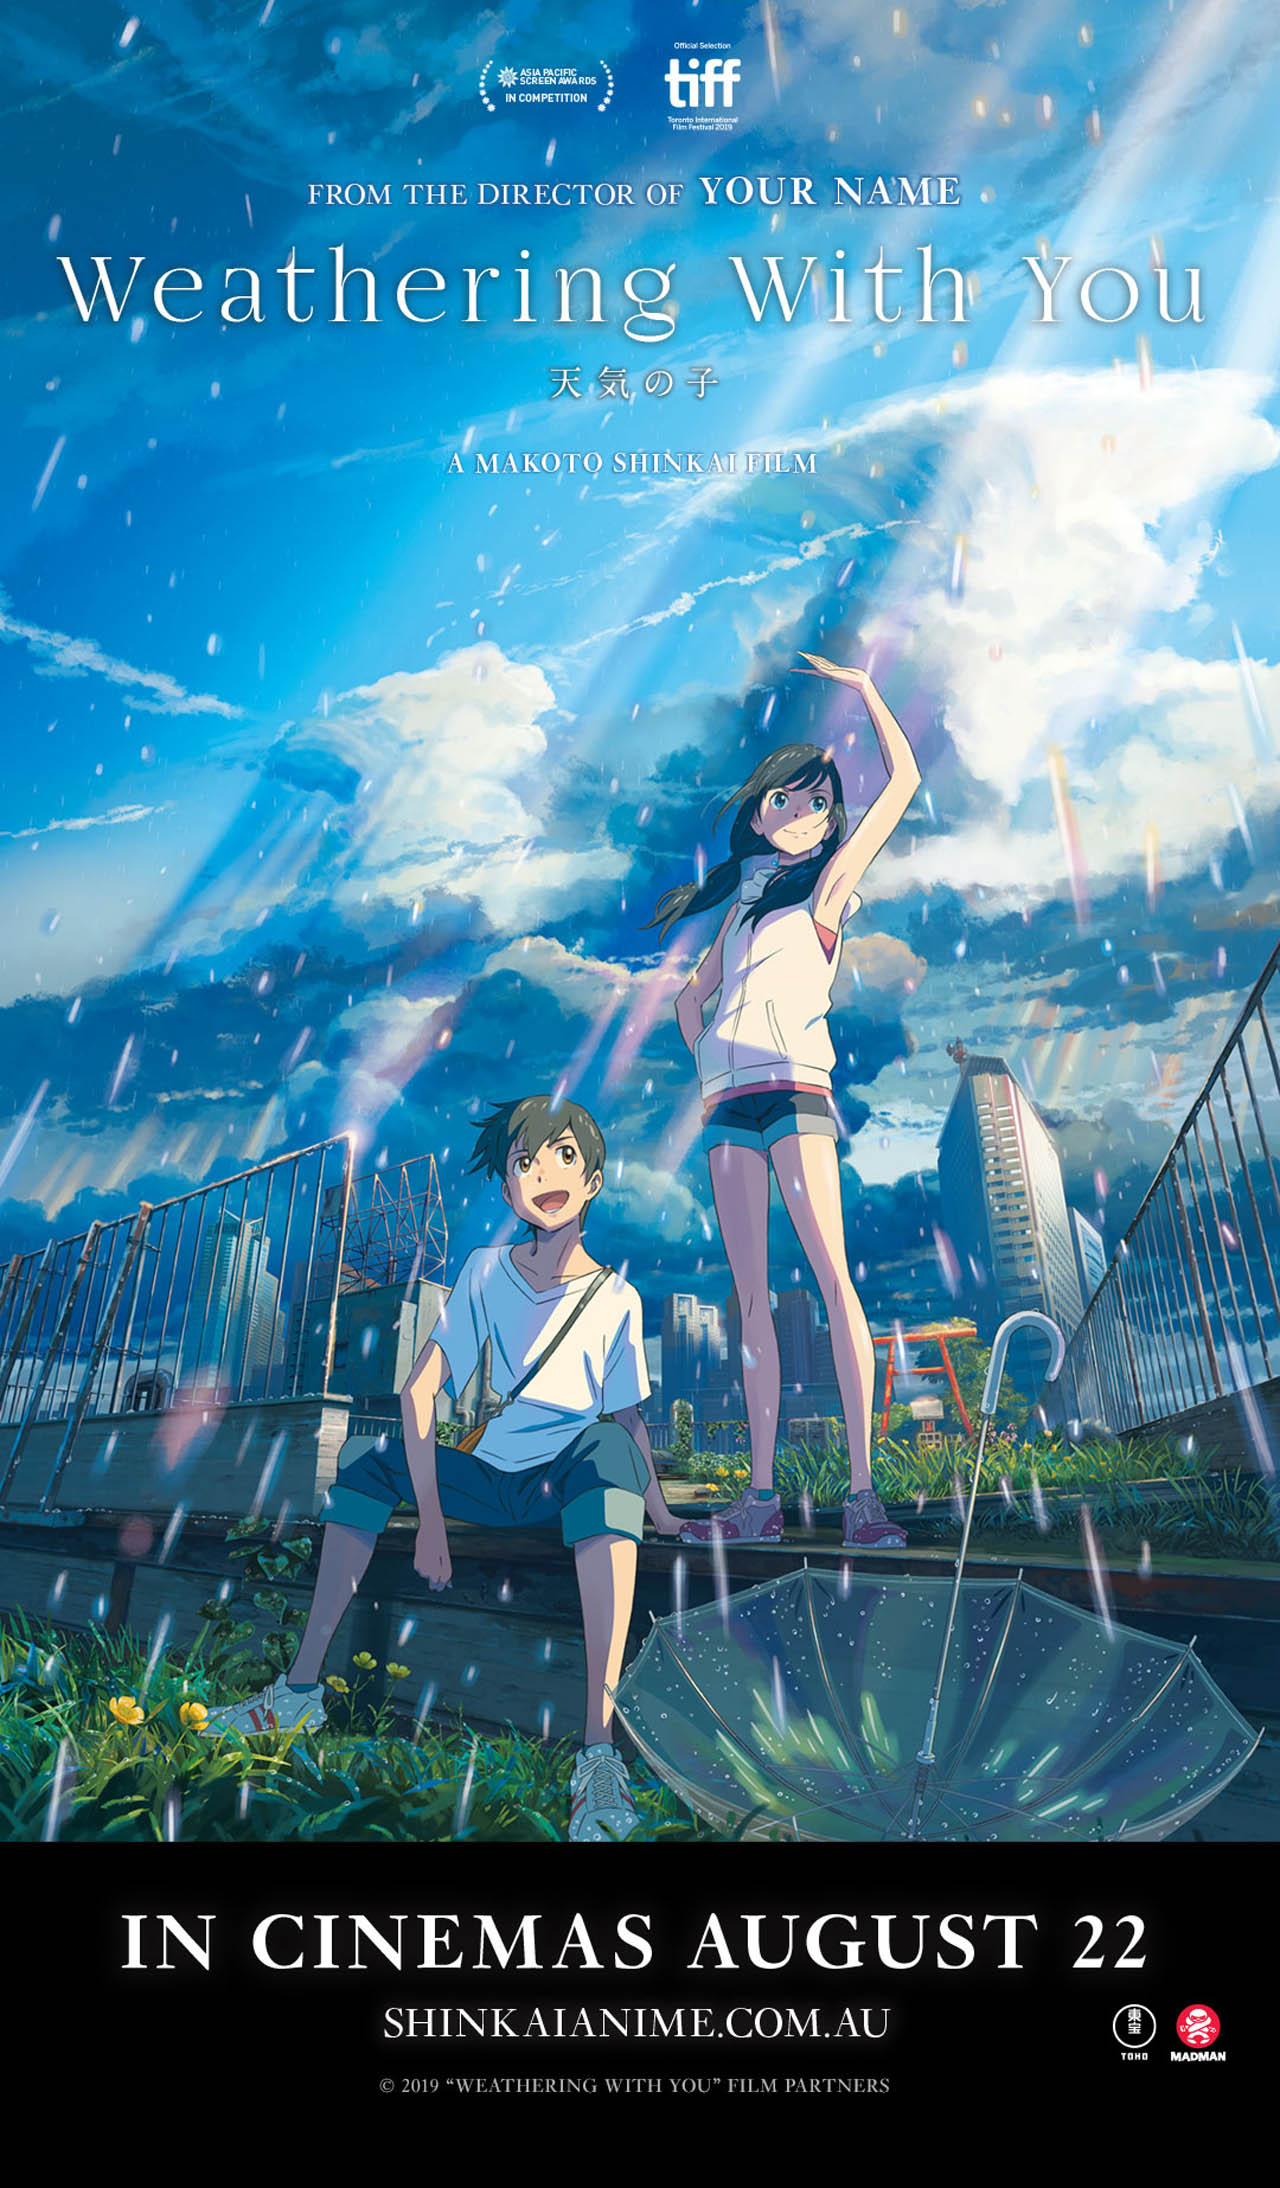 Weather With You - Anime